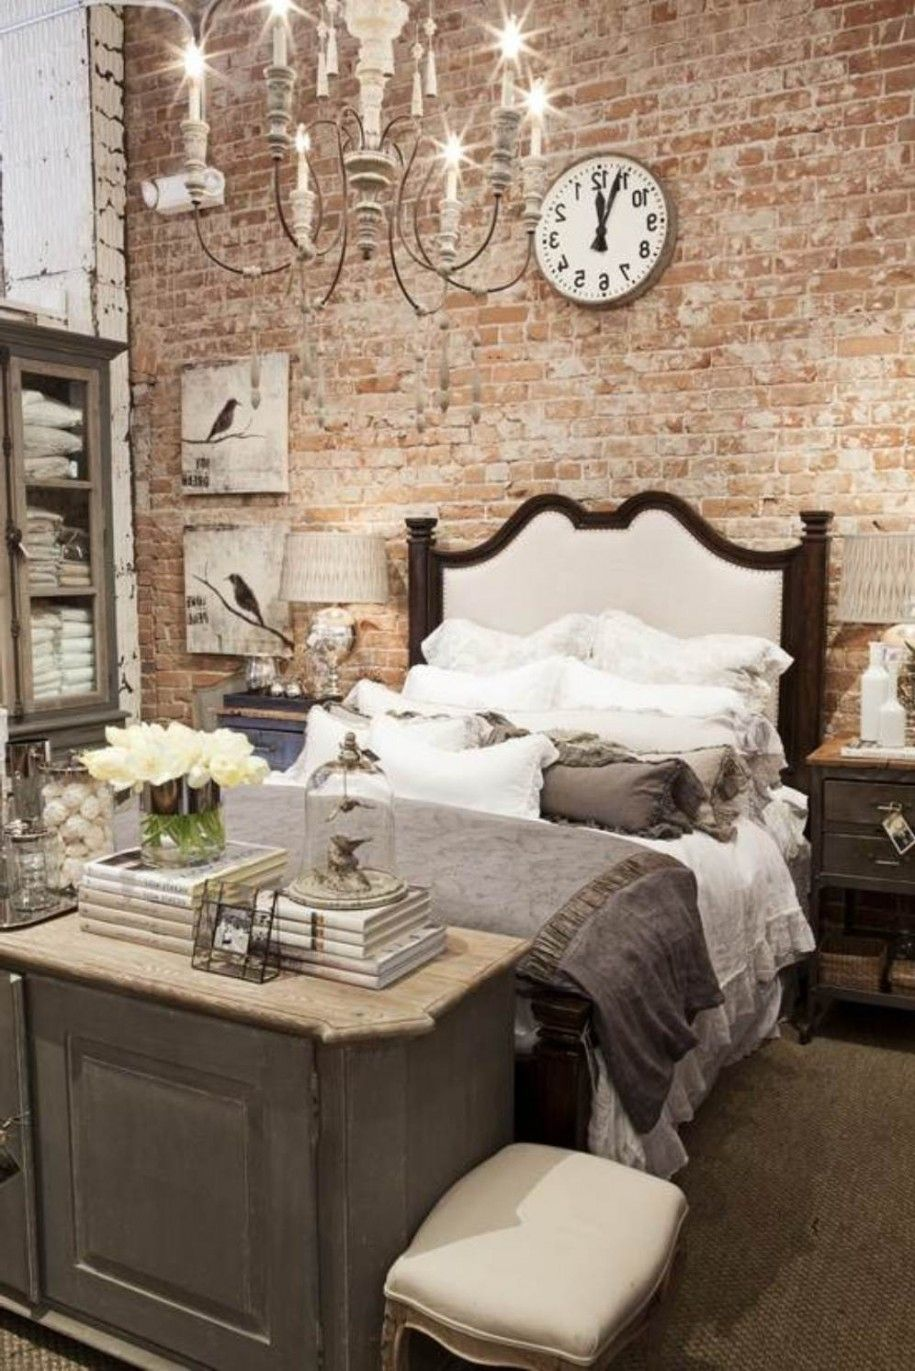 Romantic bedroom decorating ideas bedroom rustic design for Rustic romantic bedroom